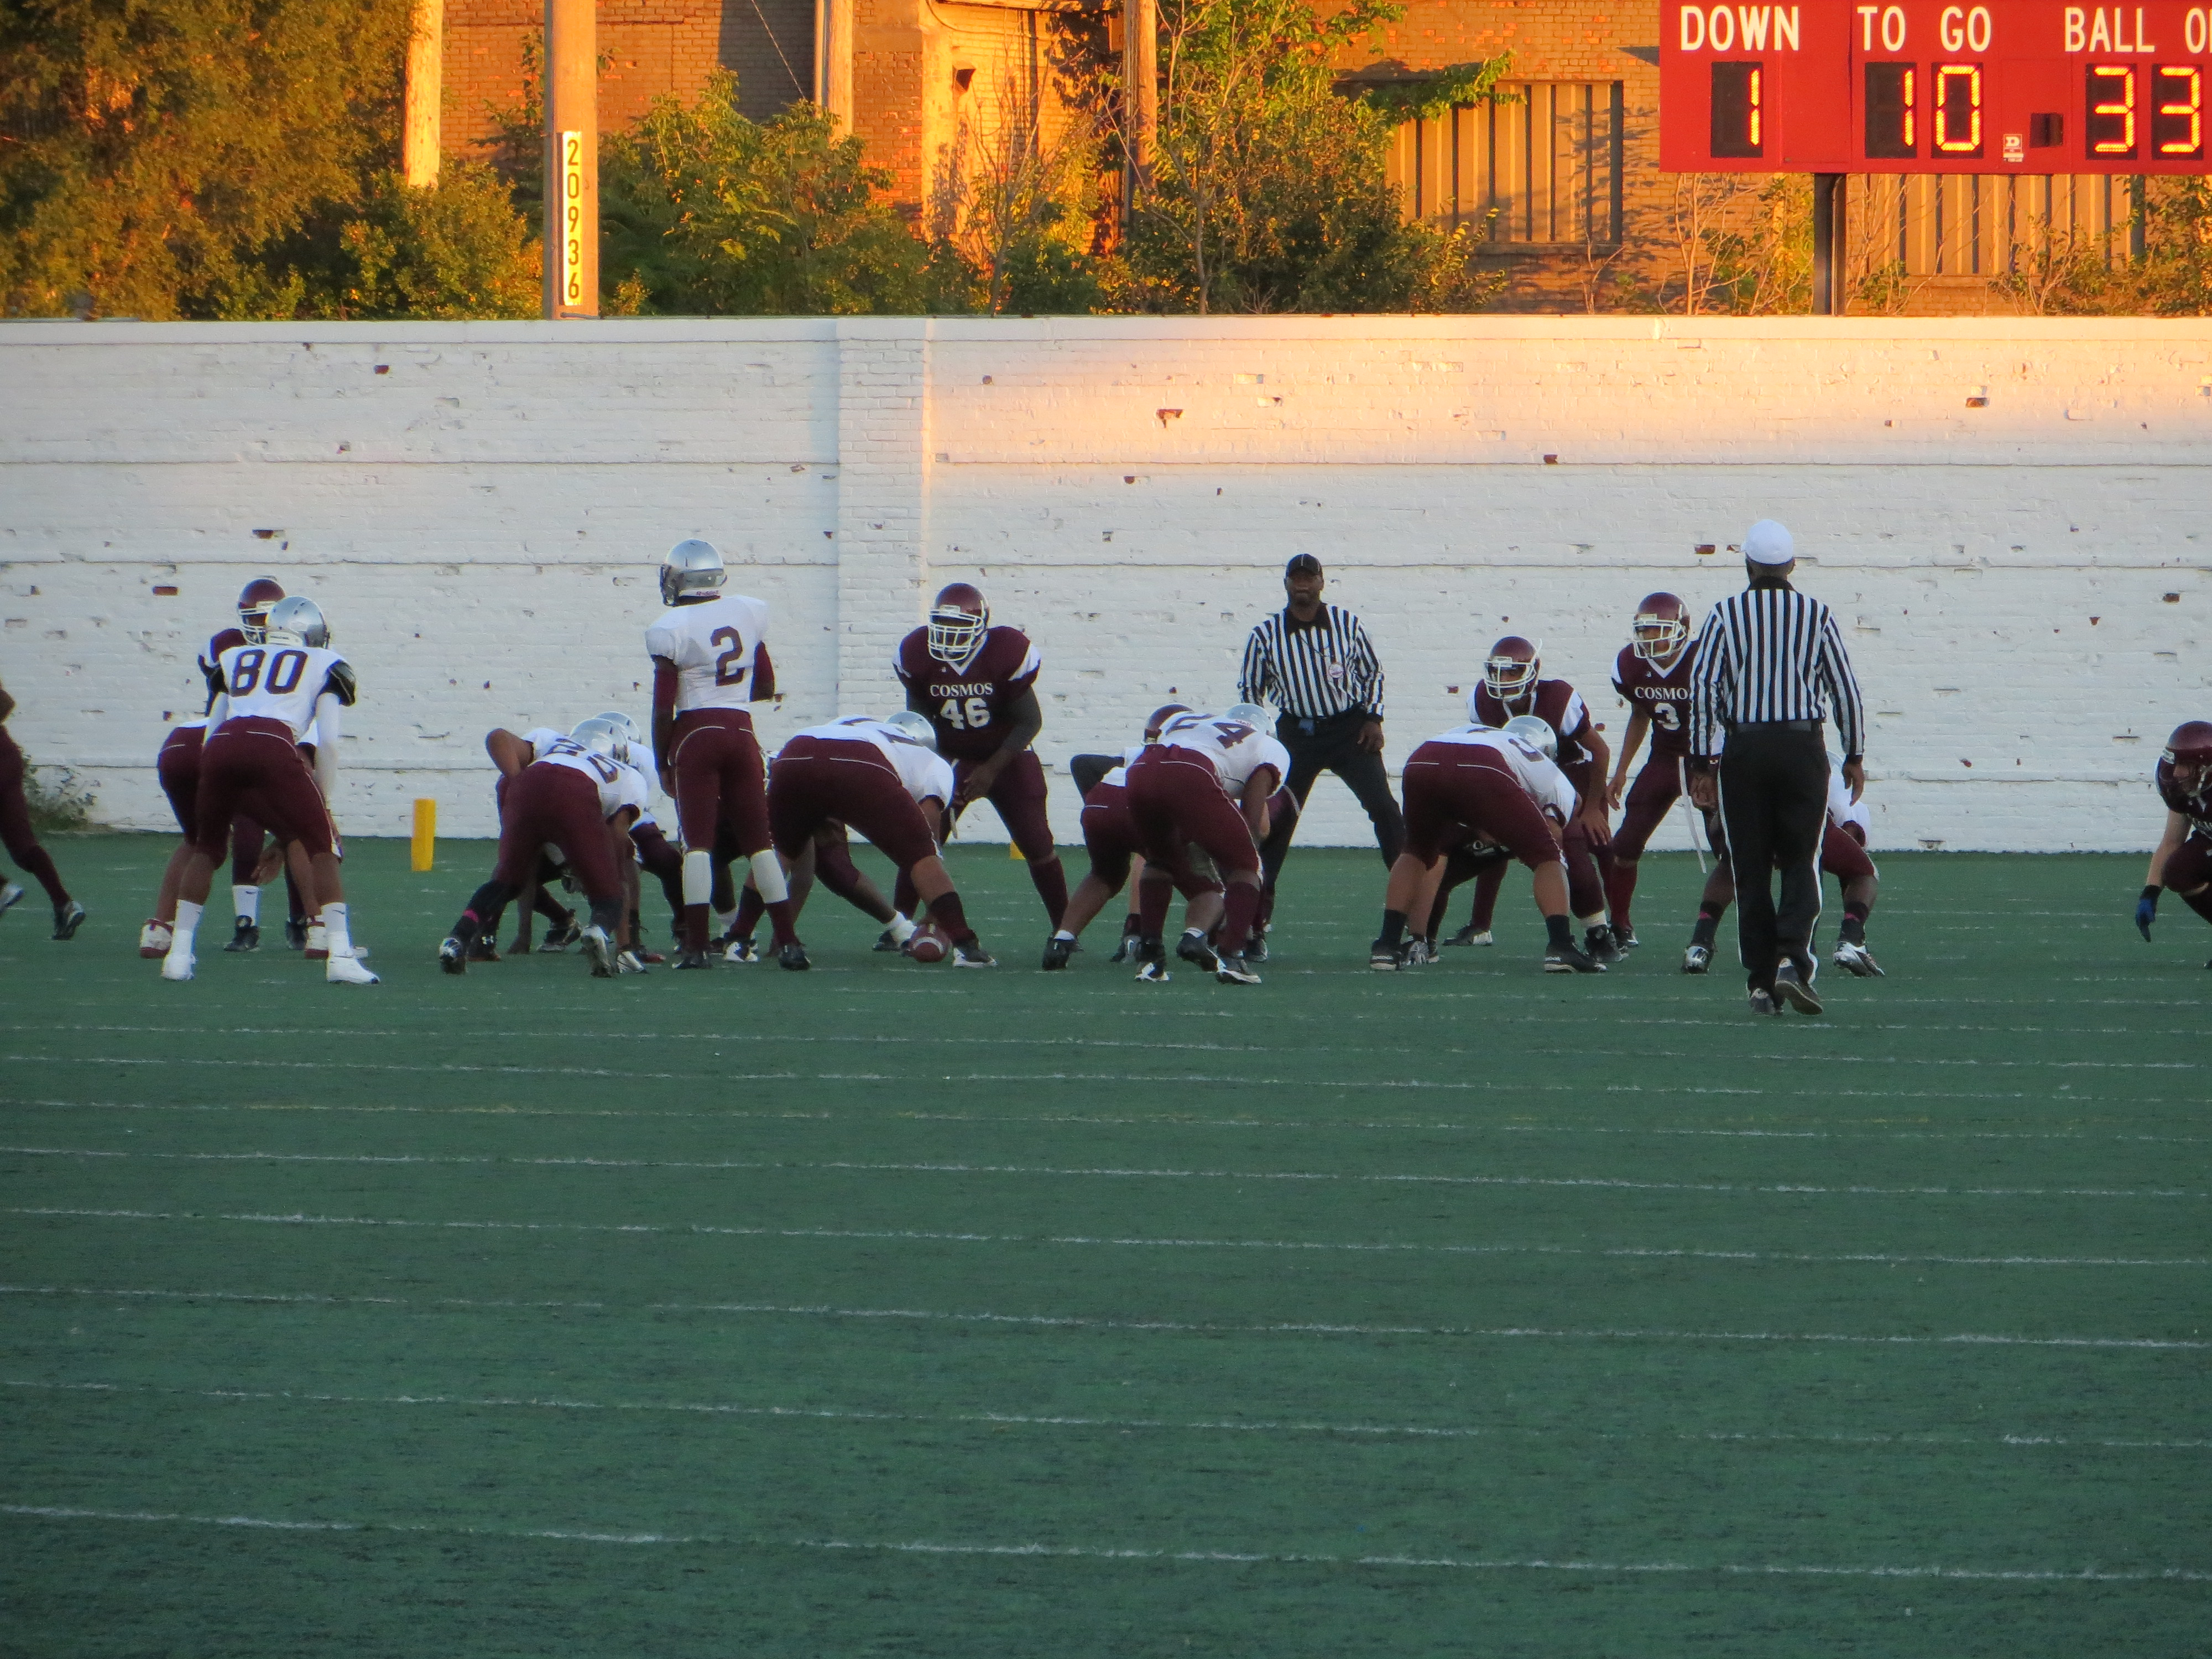 Help Hamtramck get game of the week for football!